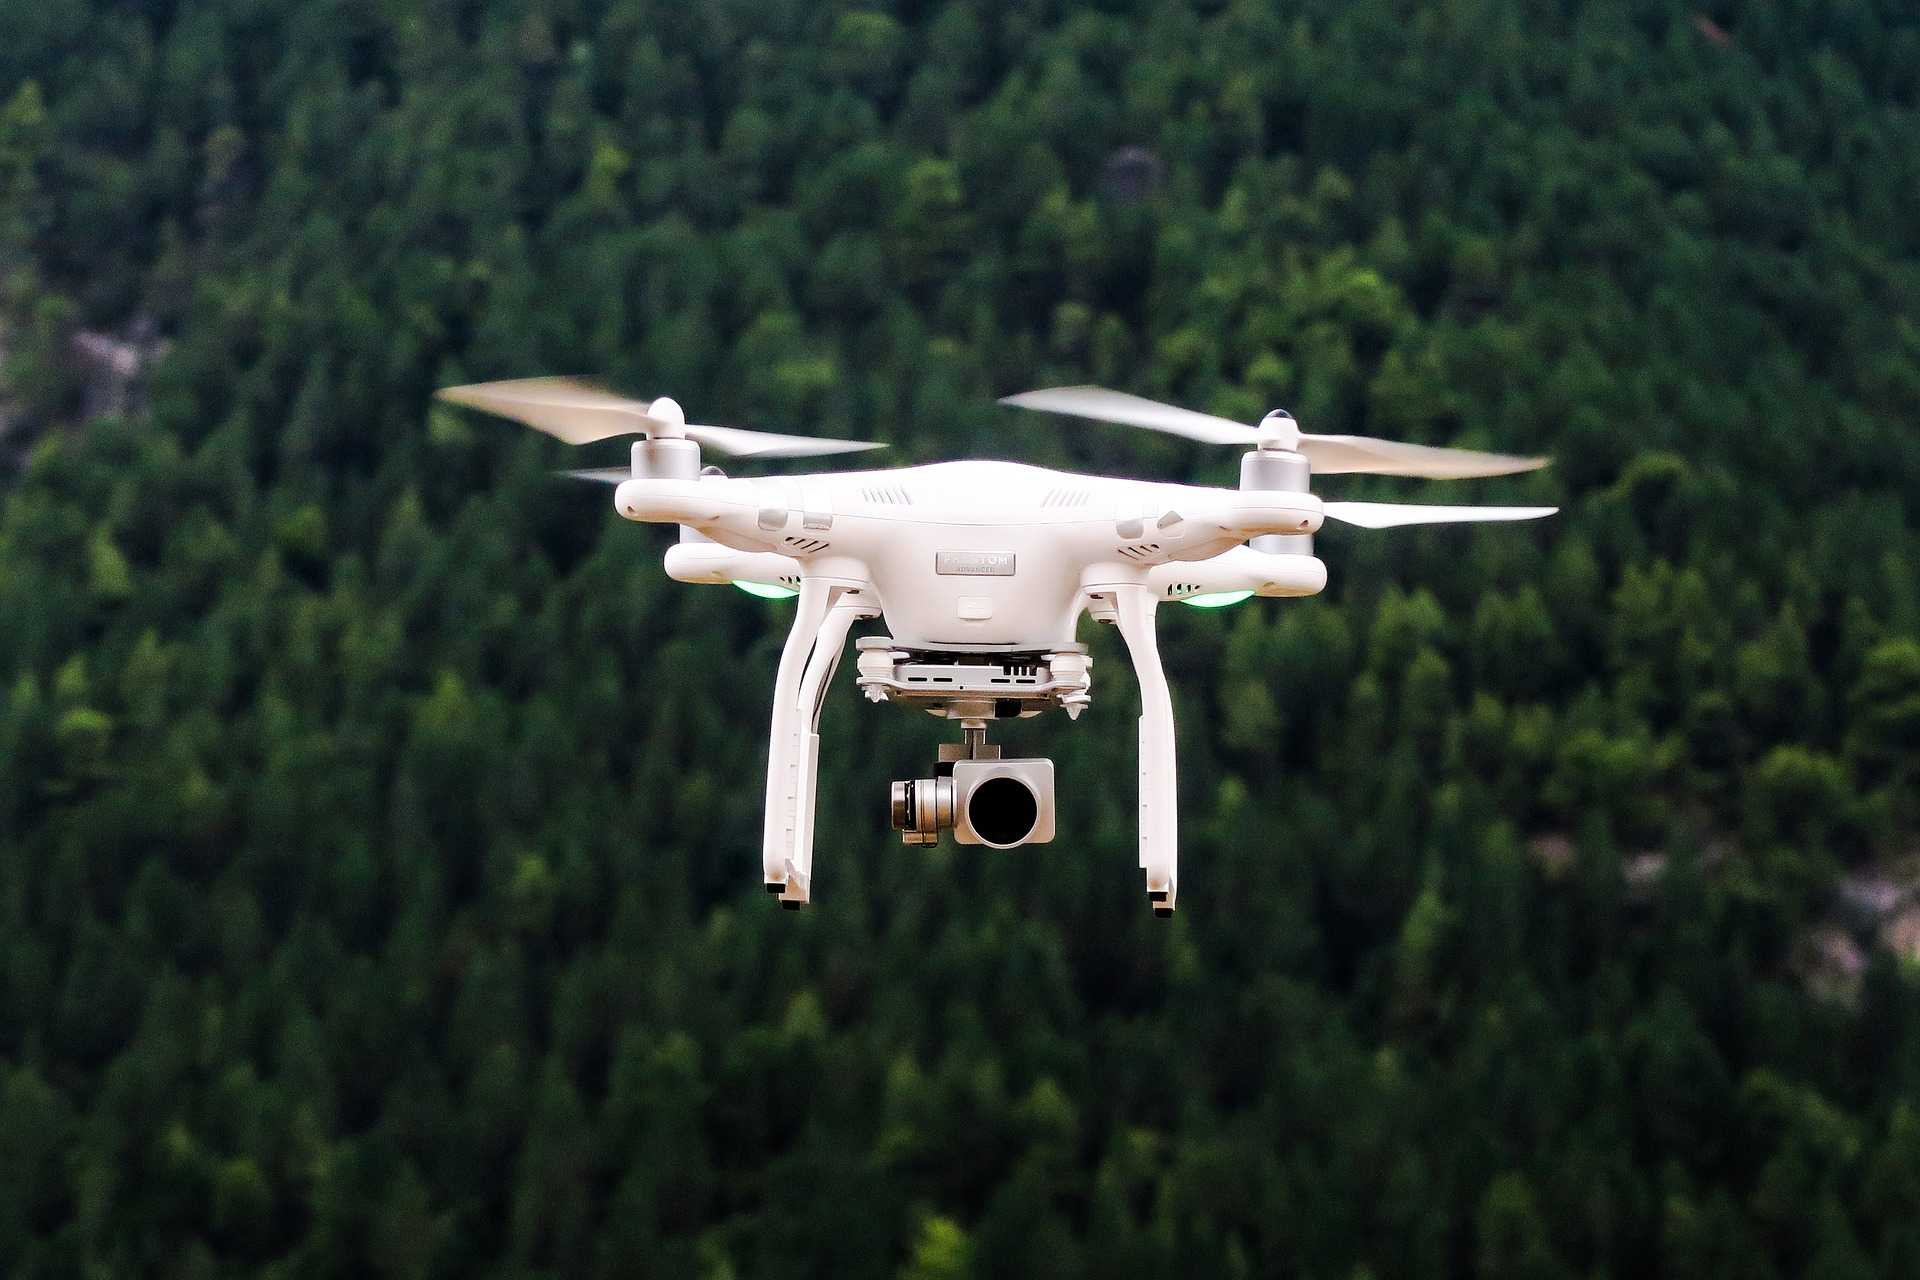 drone flying through a forest